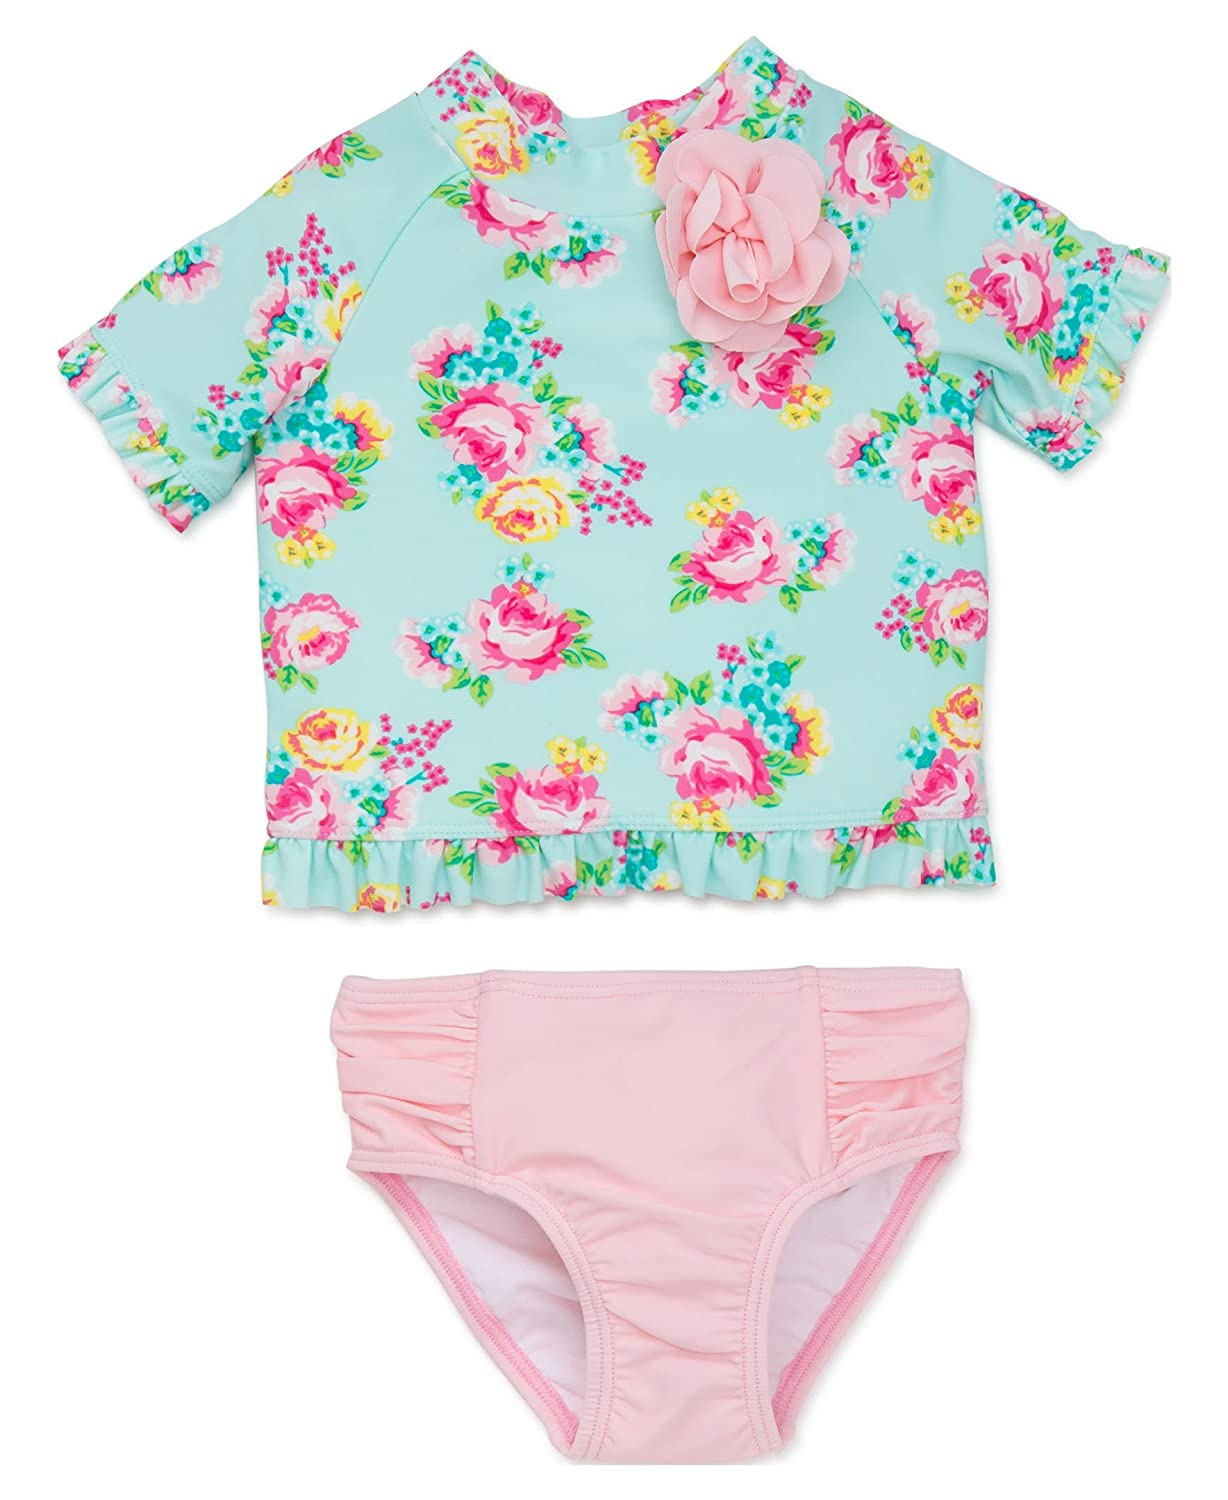 Amazon.com: Little Me Baby Girls\' UPF 50+ 2pc (Top and Bottom) Long ...